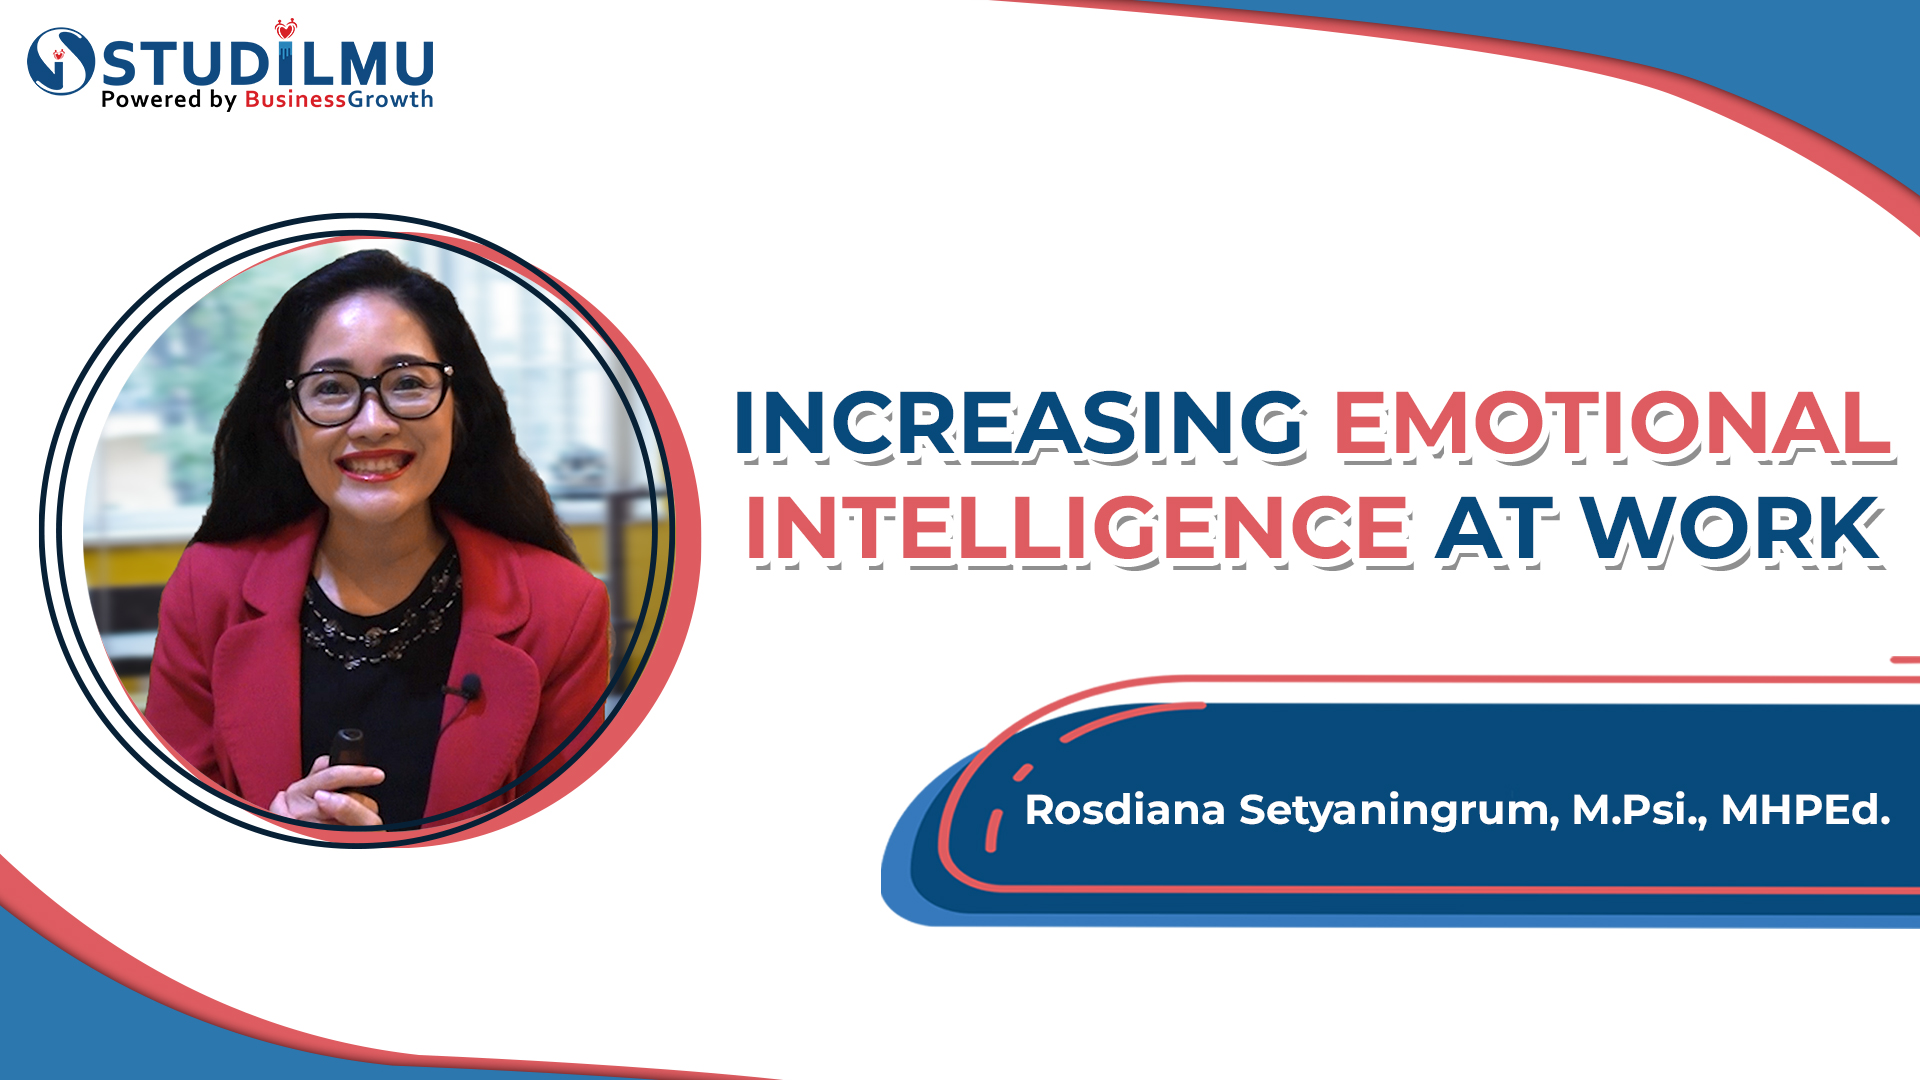 Increasing Emotional Intelligence at Work